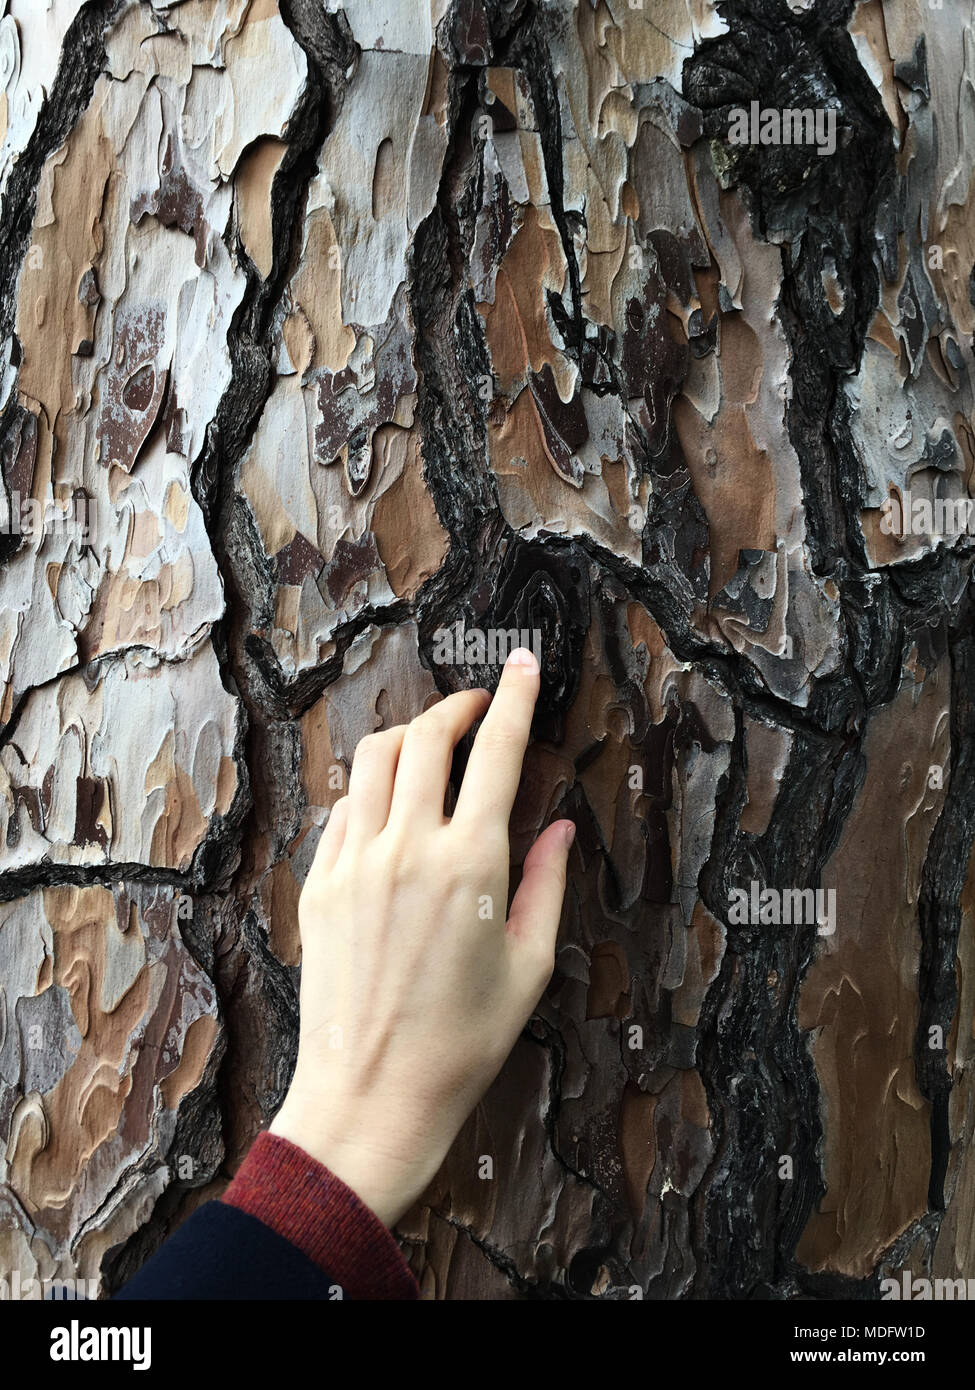 Woman's hand touching the bark of a tree - Stock Image